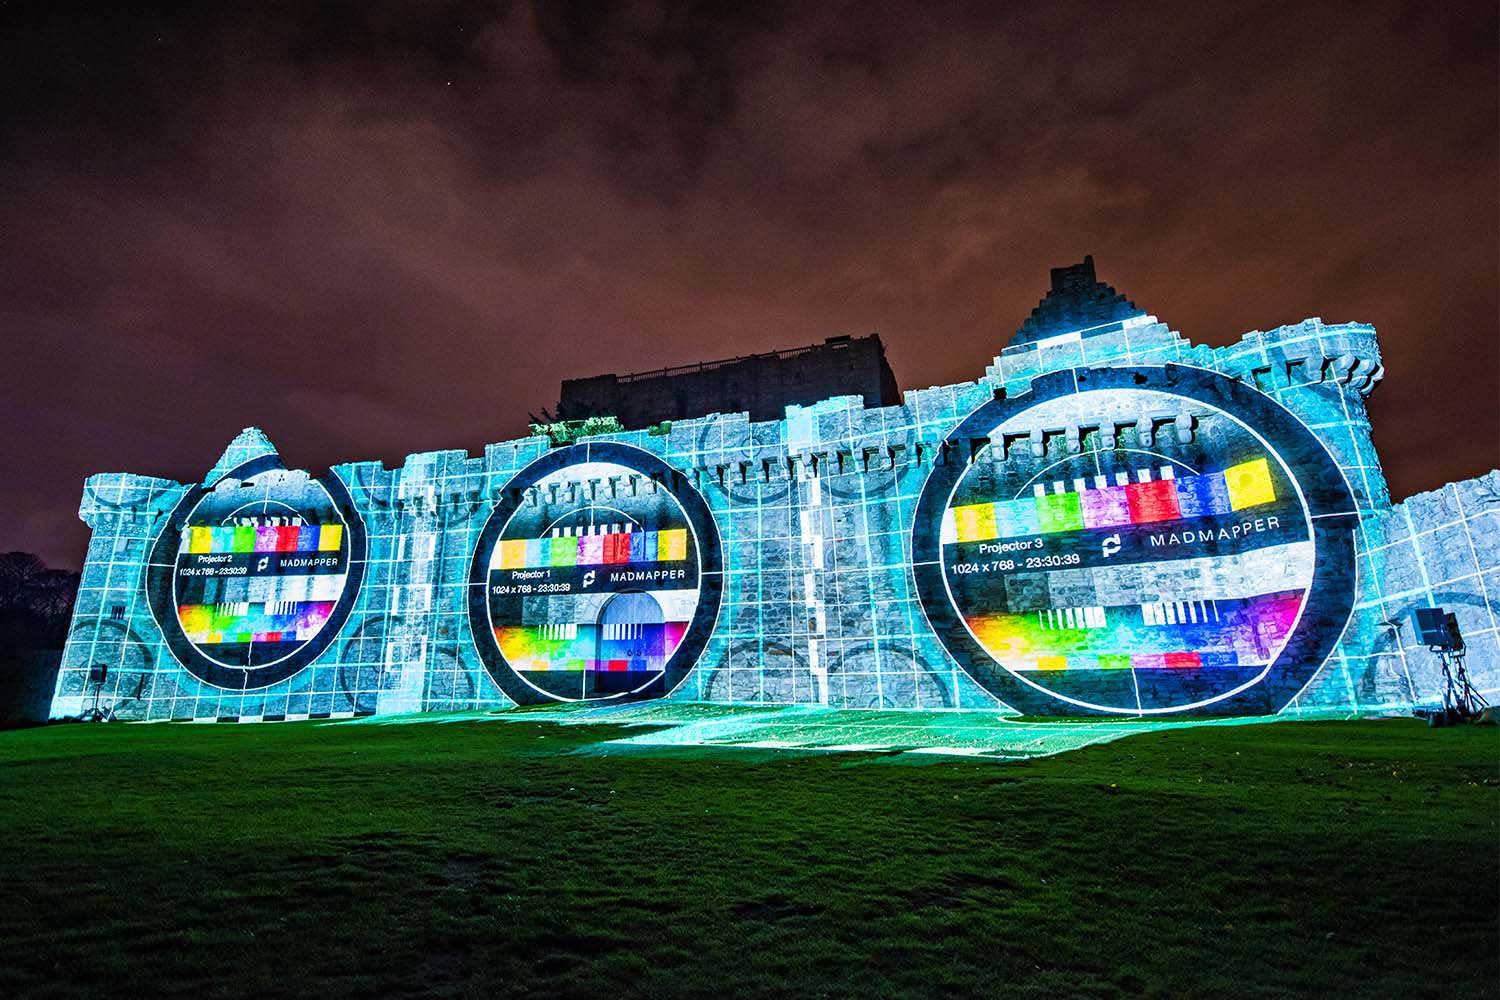 madmapper test card projection mapping onto Craigmillar Castle